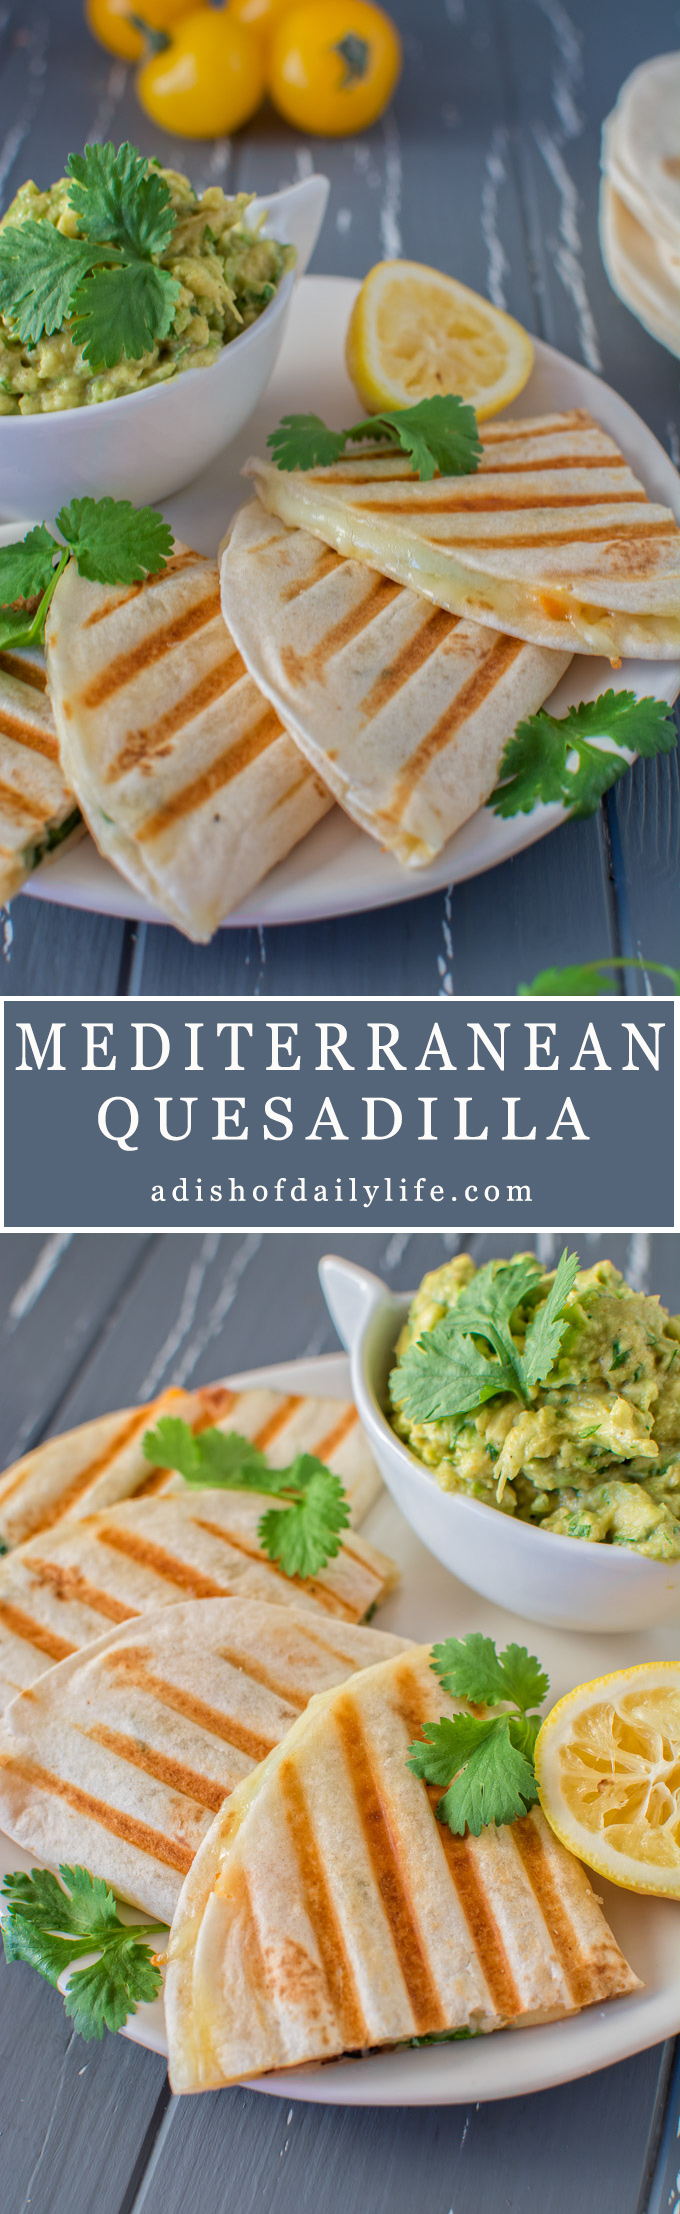 This 15-minute, healthy vegetarian Mediterranean Quesadilla filled with mushrooms, olives and bell peppers can serve as a quick lunch or a light dinner. Serve it with guacamole or a fresh salad. Great recipe for game day too!